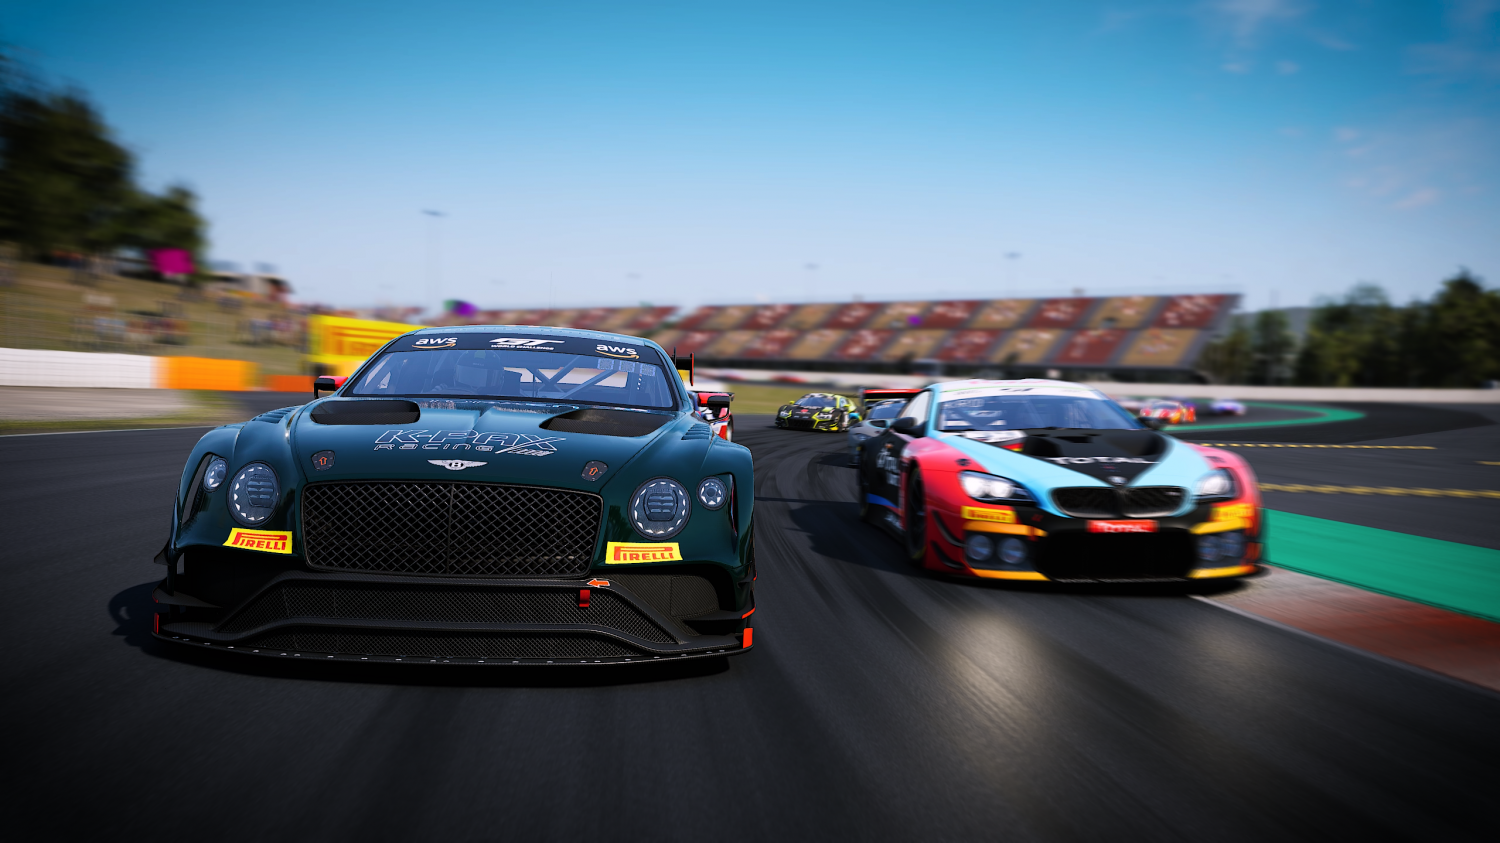 Barcelona Brings 40 Entries to GT Rivals Representing 11 Different GT3 Manufacturers